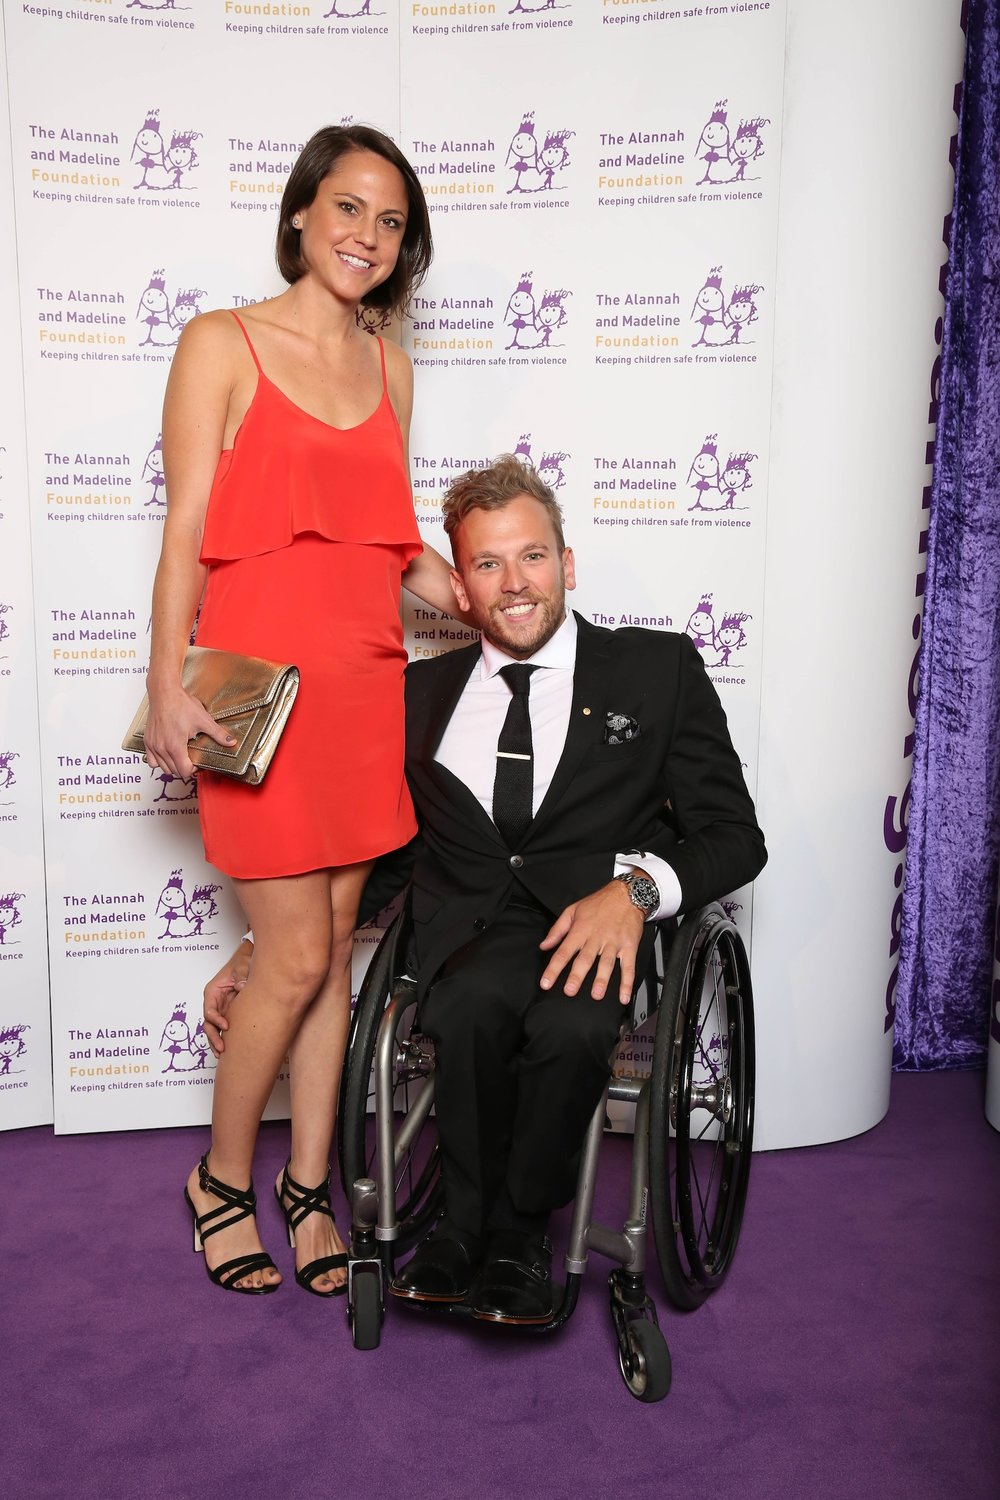 starry-starry-night-gala-ball-2015-kate-lawrance-dylan-alcott.jpg